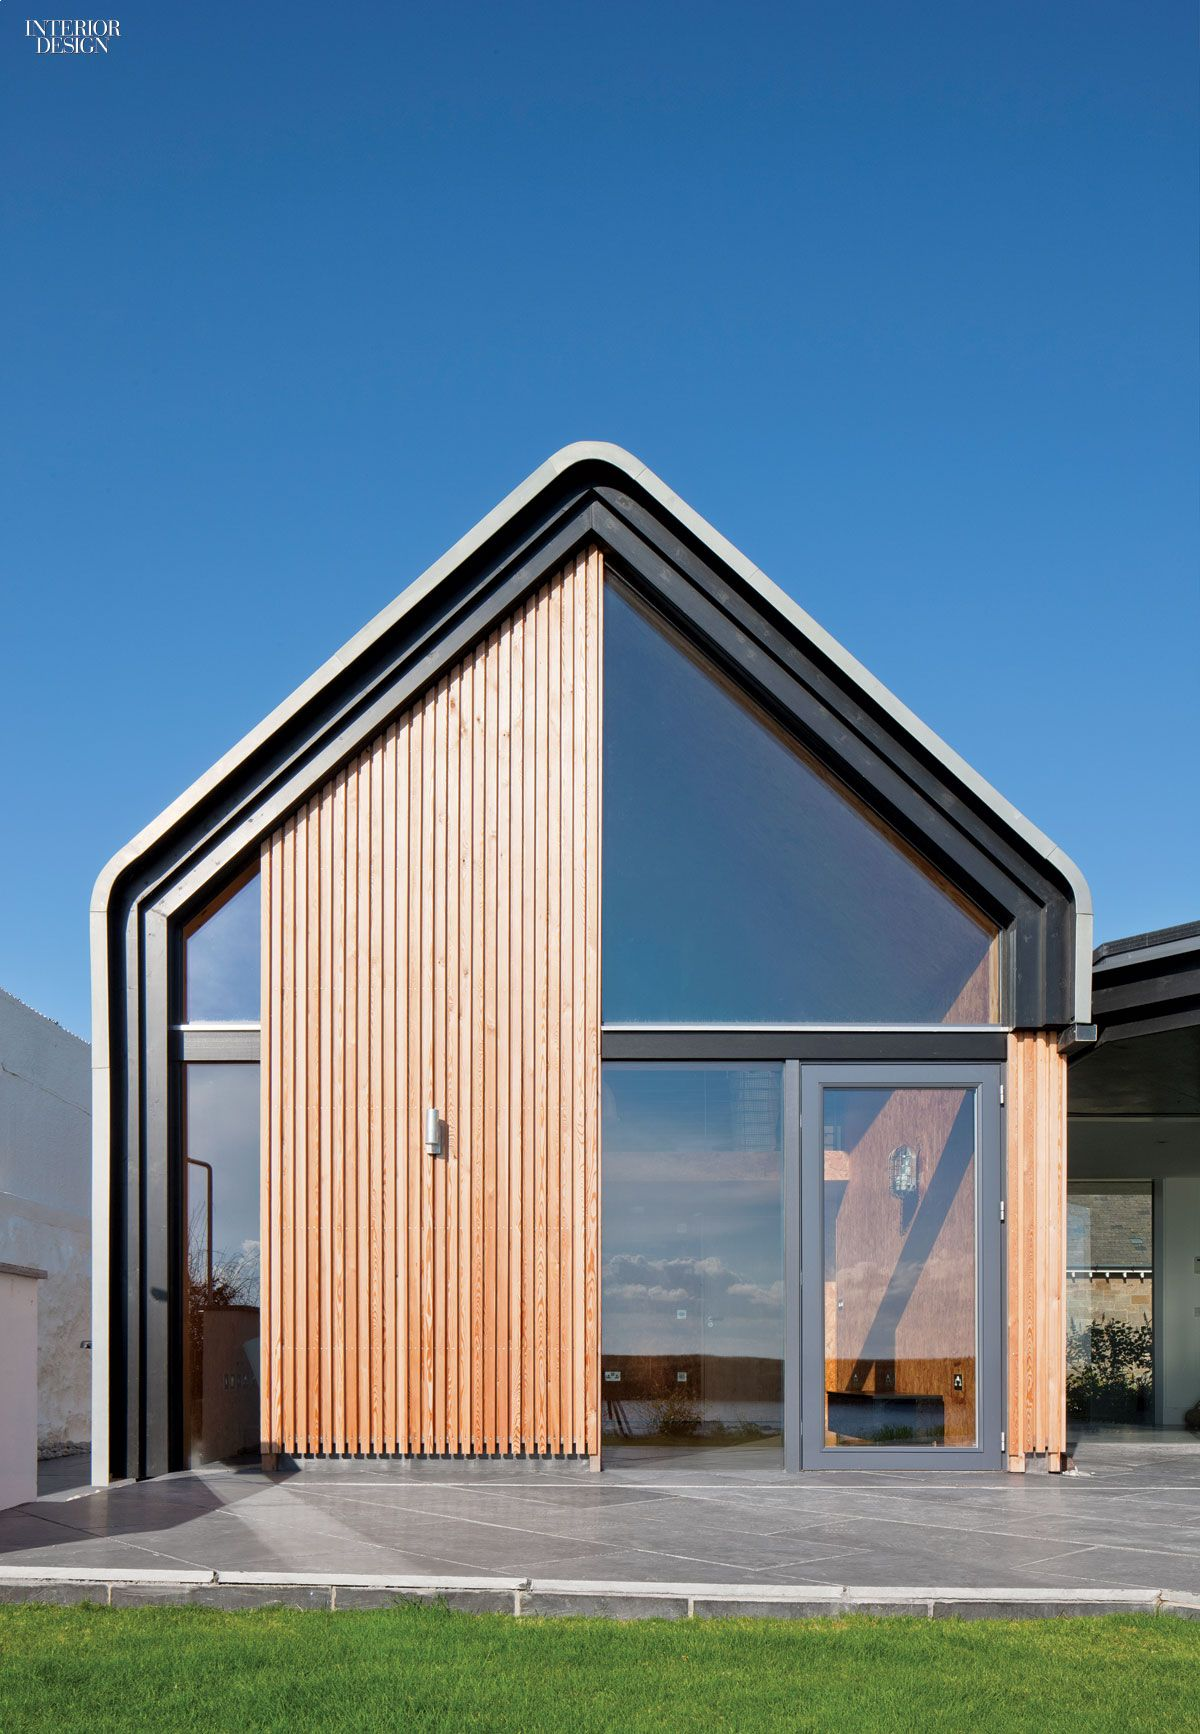 Kingdom of light a modern beach house in scotland for Minimalistische lebensweise